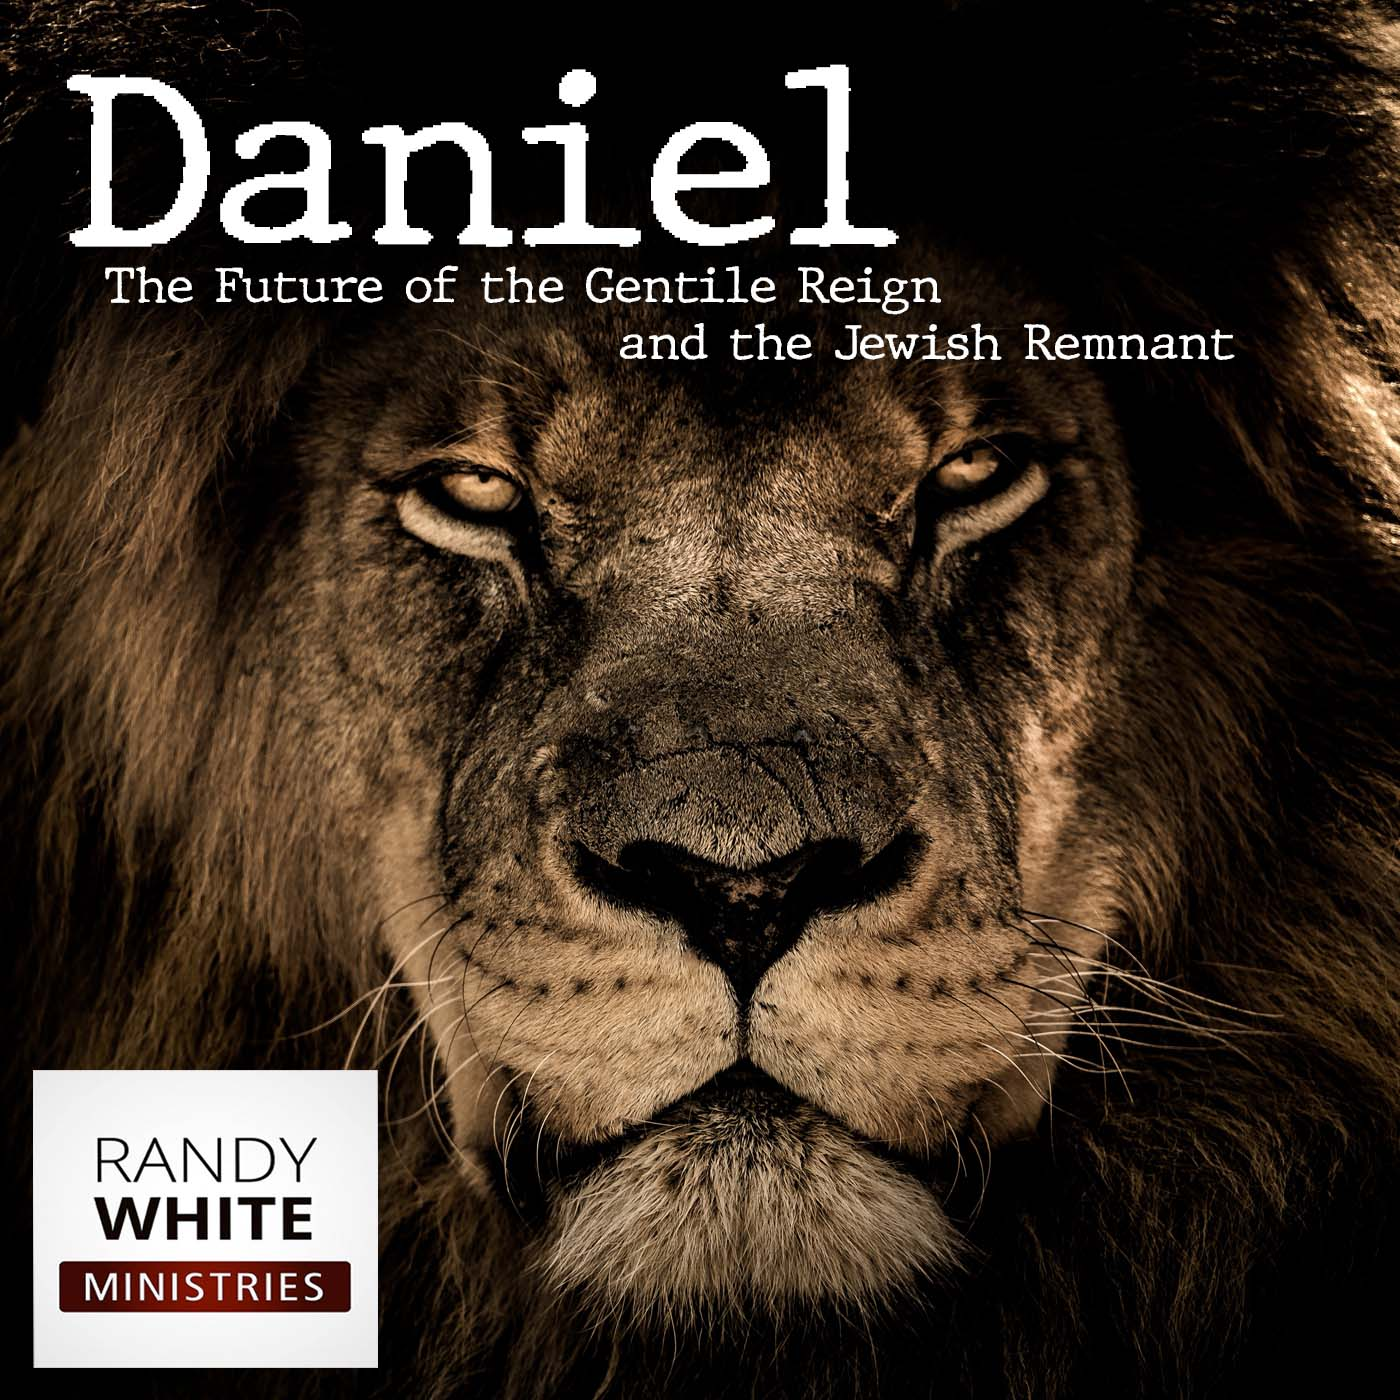 RWM: The Book of Daniel - The Future of the Gentile Reign and the Jewish Remnant